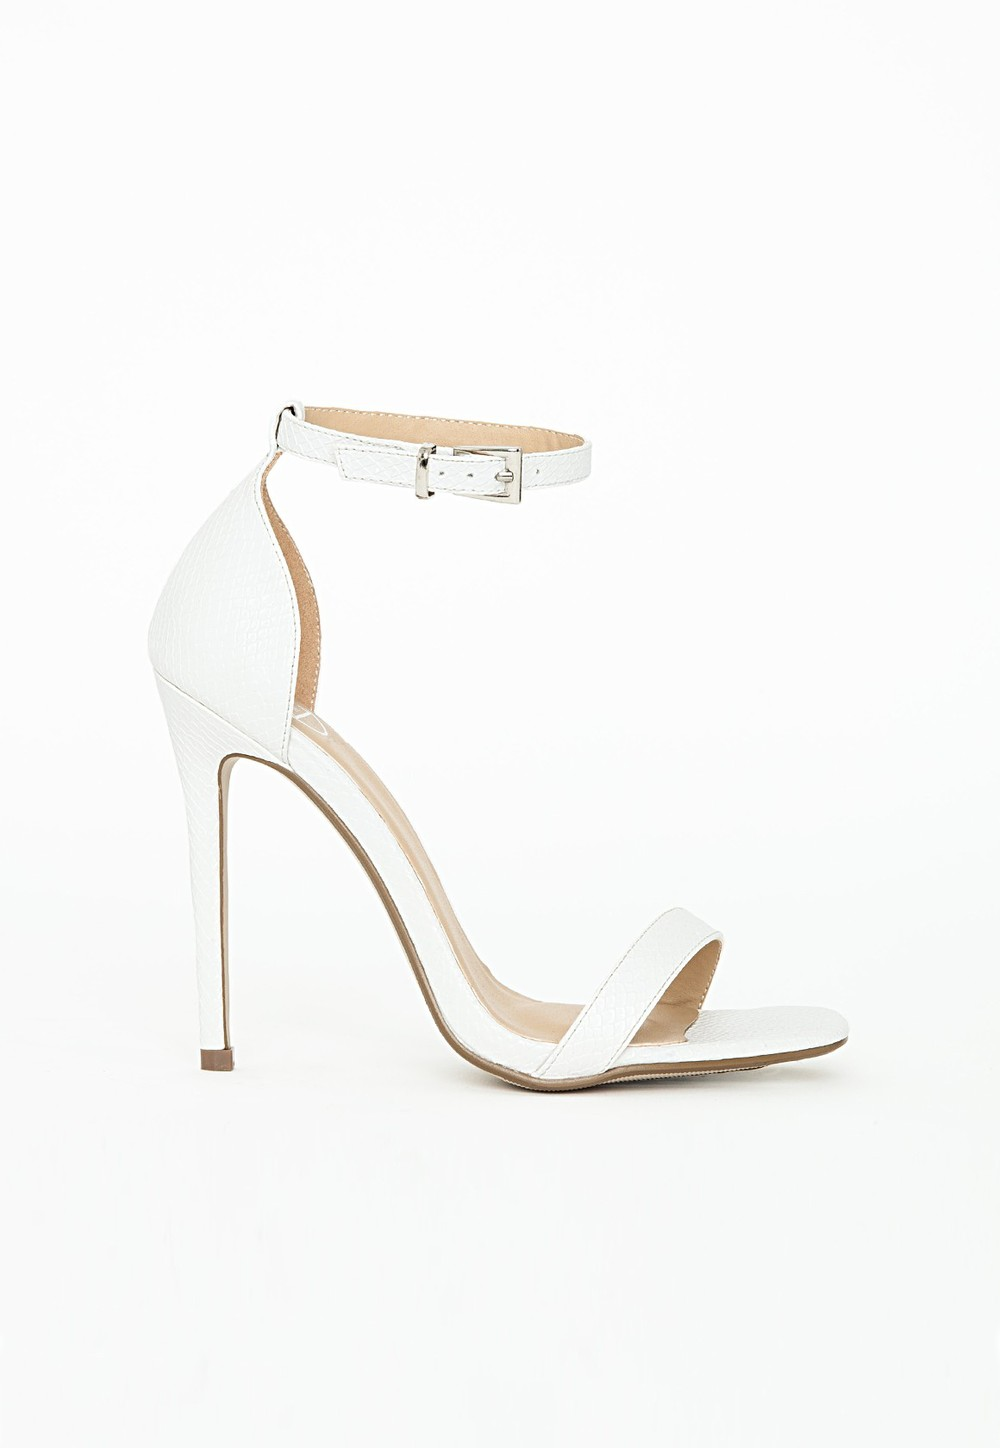 Missguided, $50